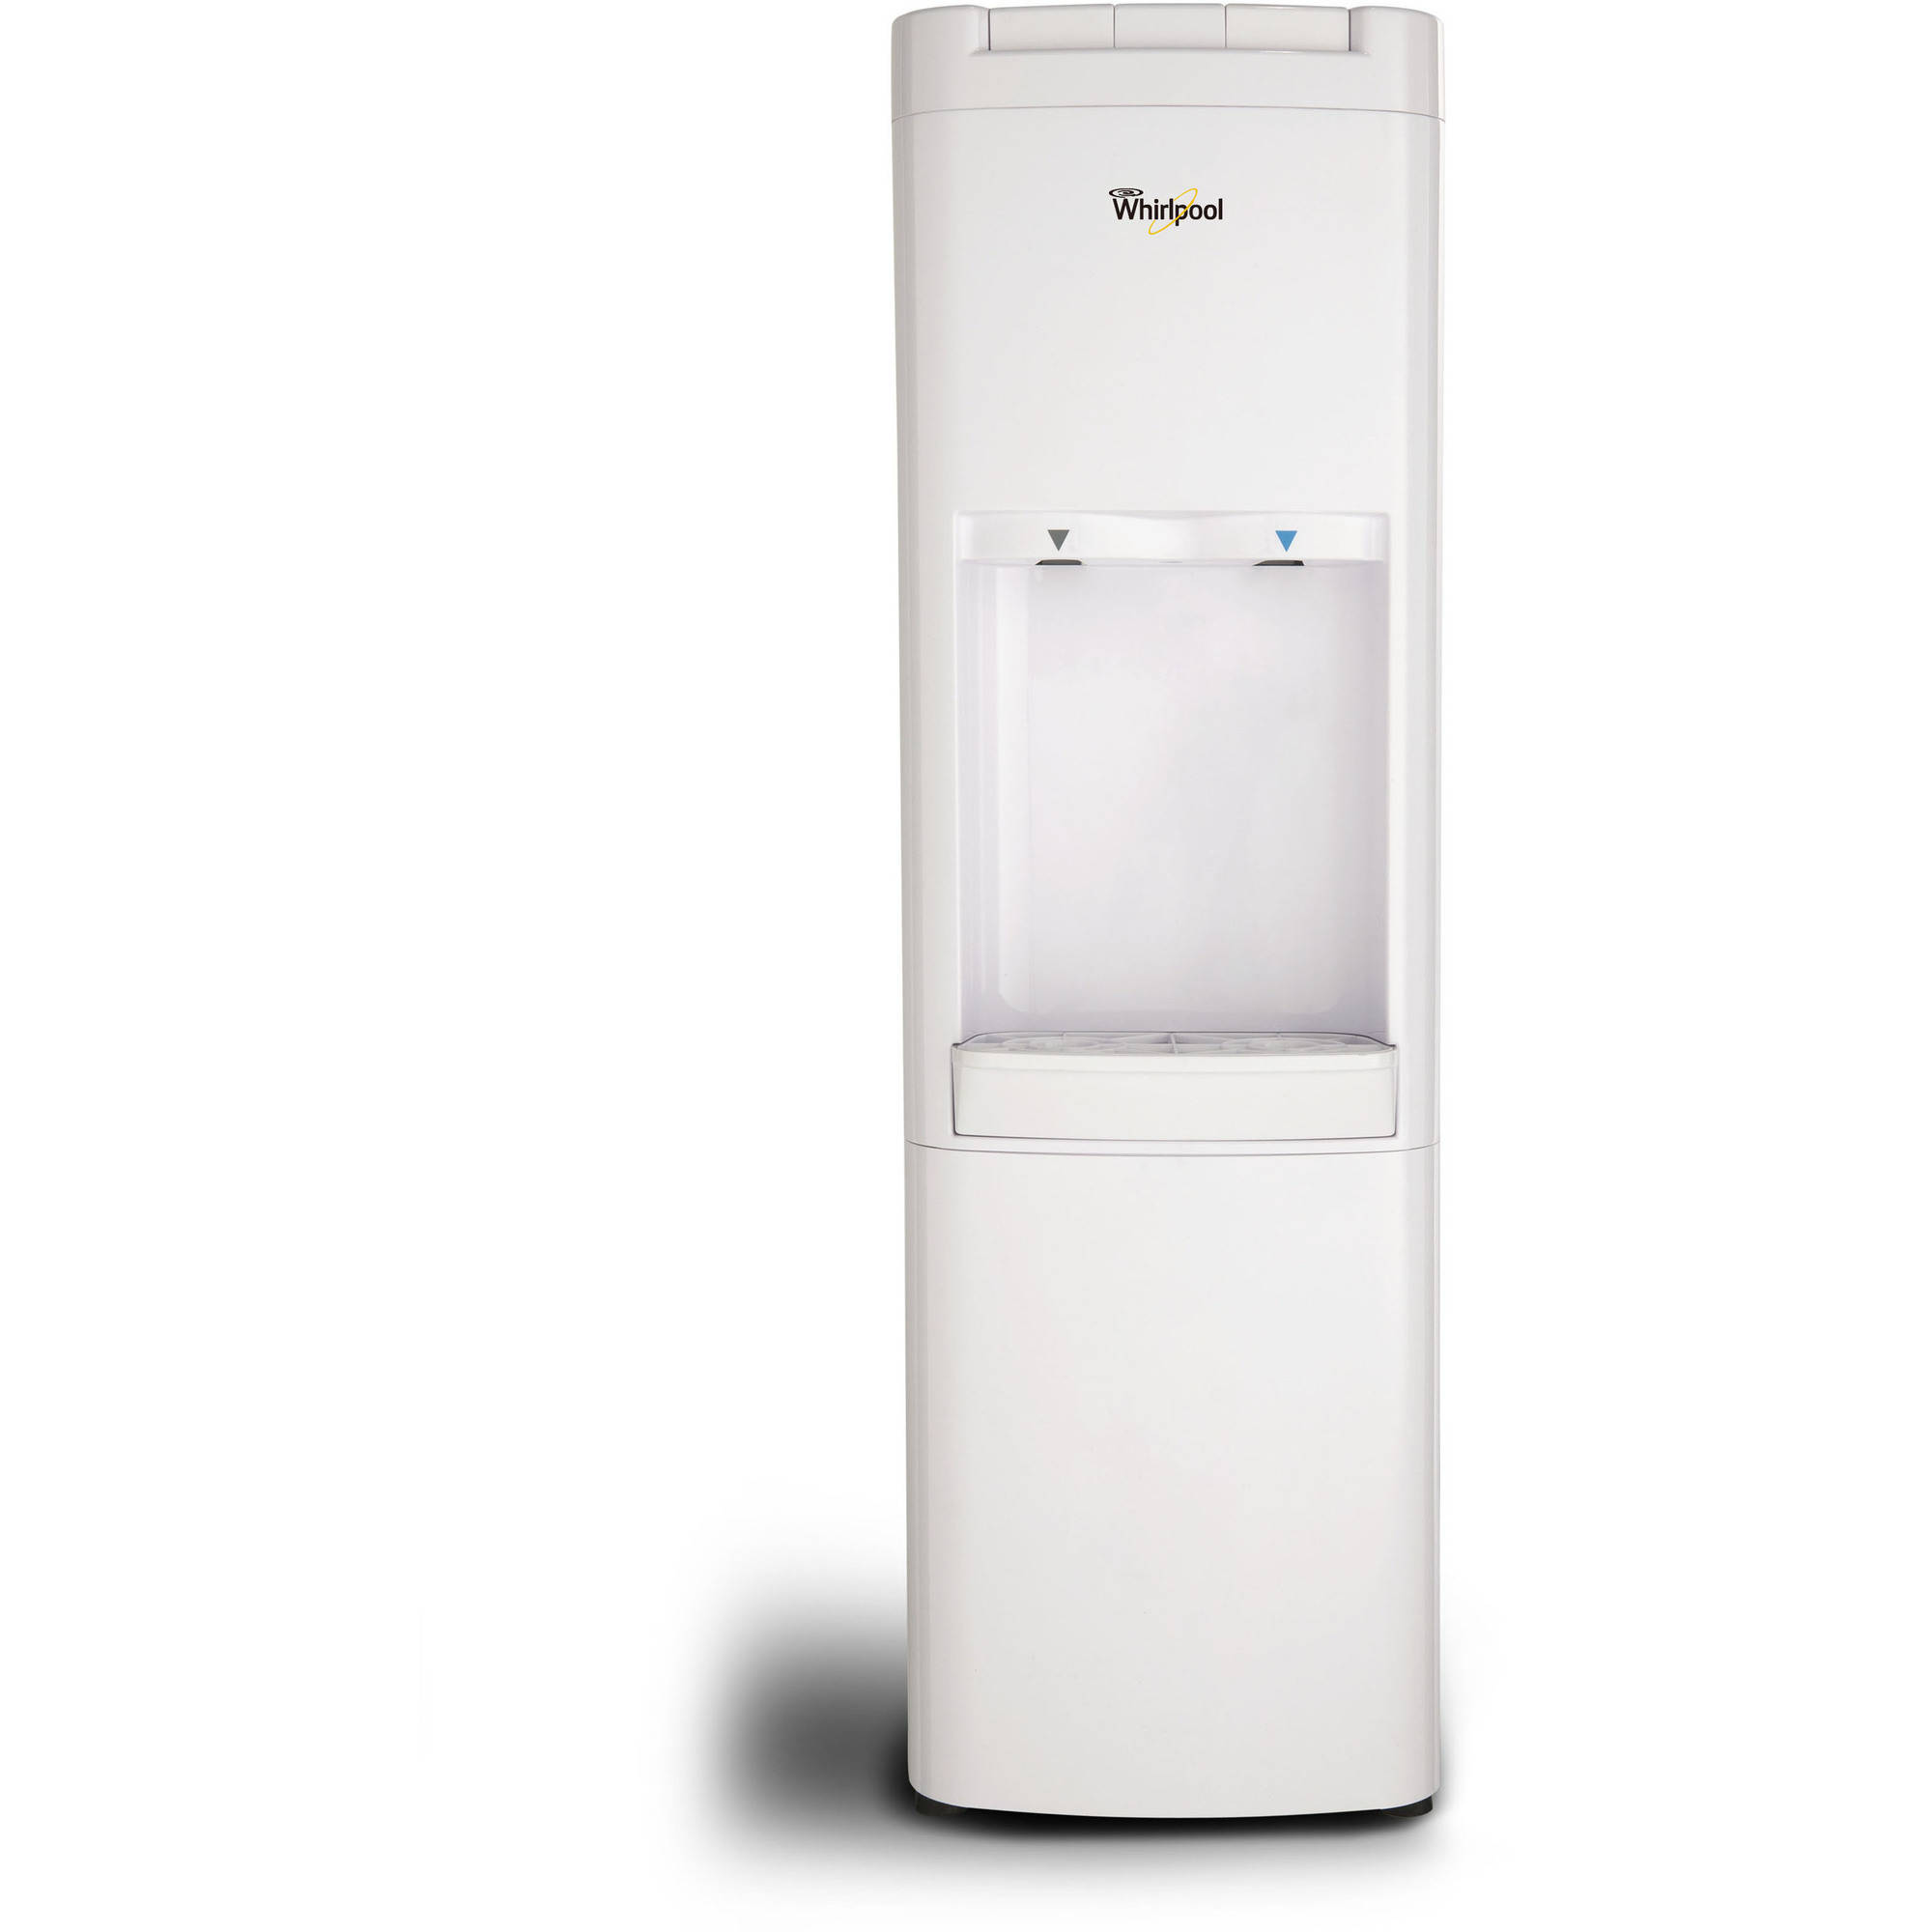 Whirlpool Commercial Water Dispenser Water Cooler With Ice Chilled Water  Cooling Technology, White